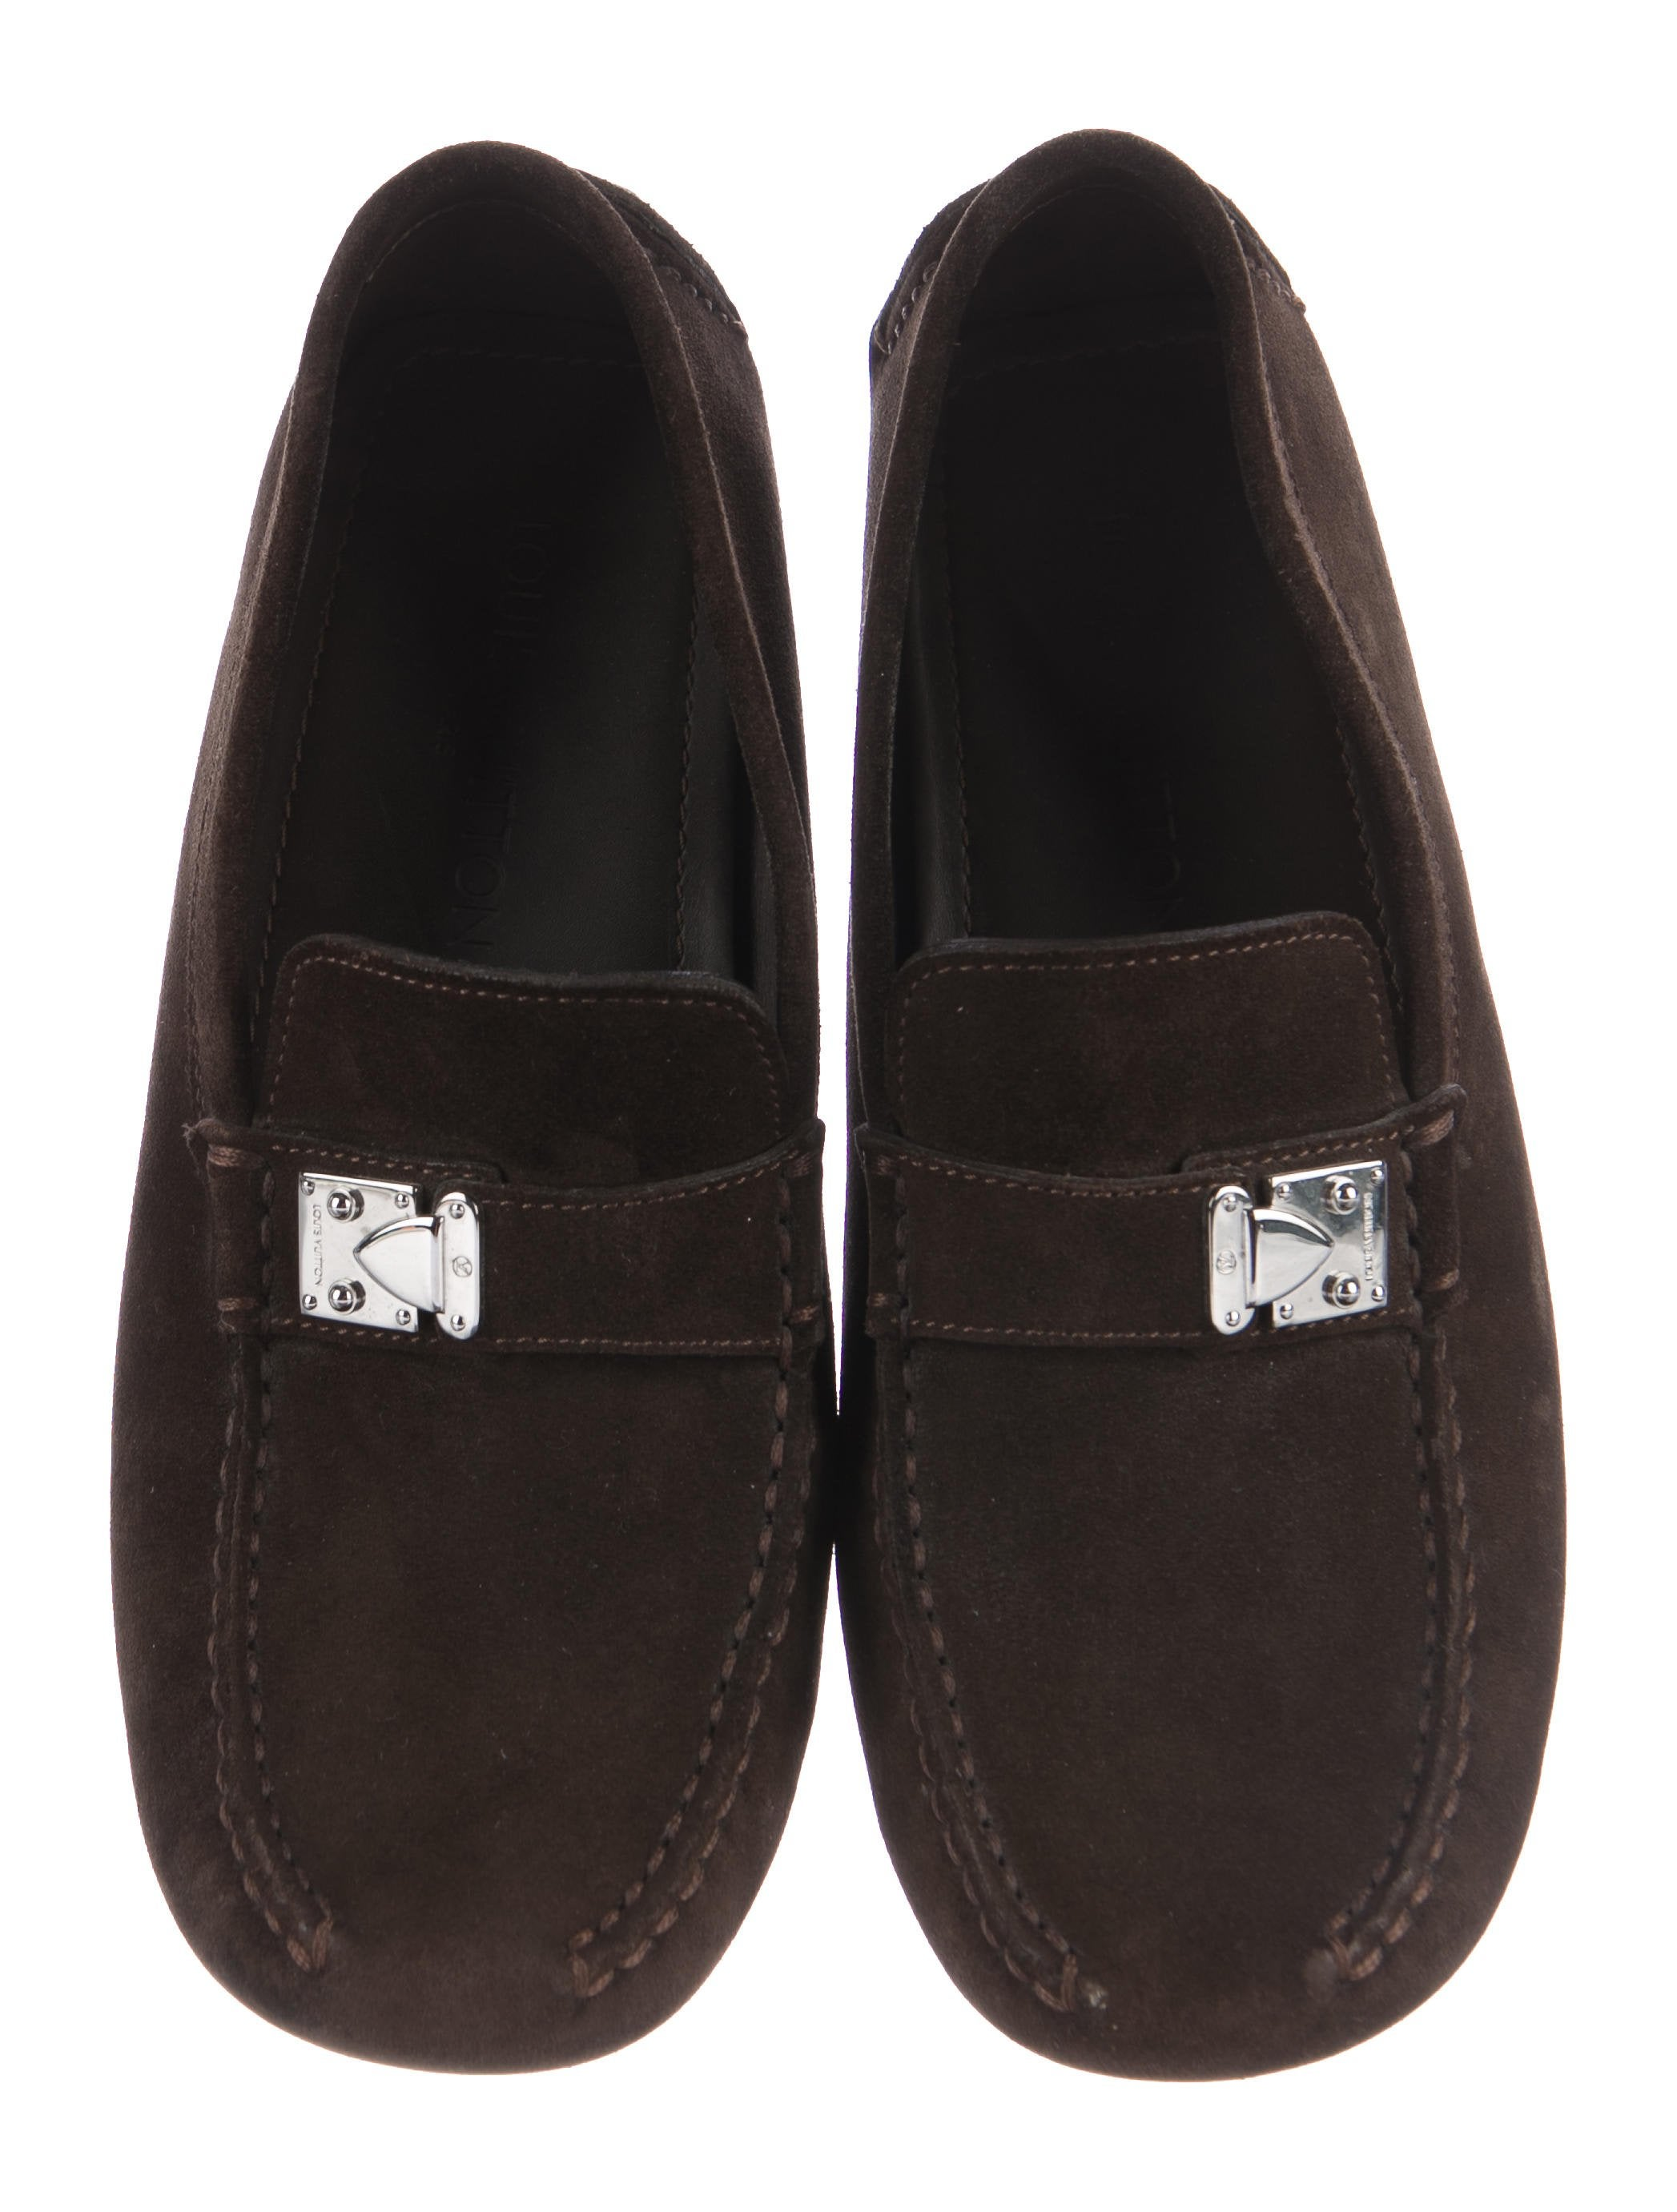 alias|solutions provides more than just the final brochures, advertisements, or collateral Fulinken on Brown Suede Moccasin Men's Loafers Driving Shoes Casual Shoes Slip Leather. We provide an image for your business through creative graphic design. That image gives the .